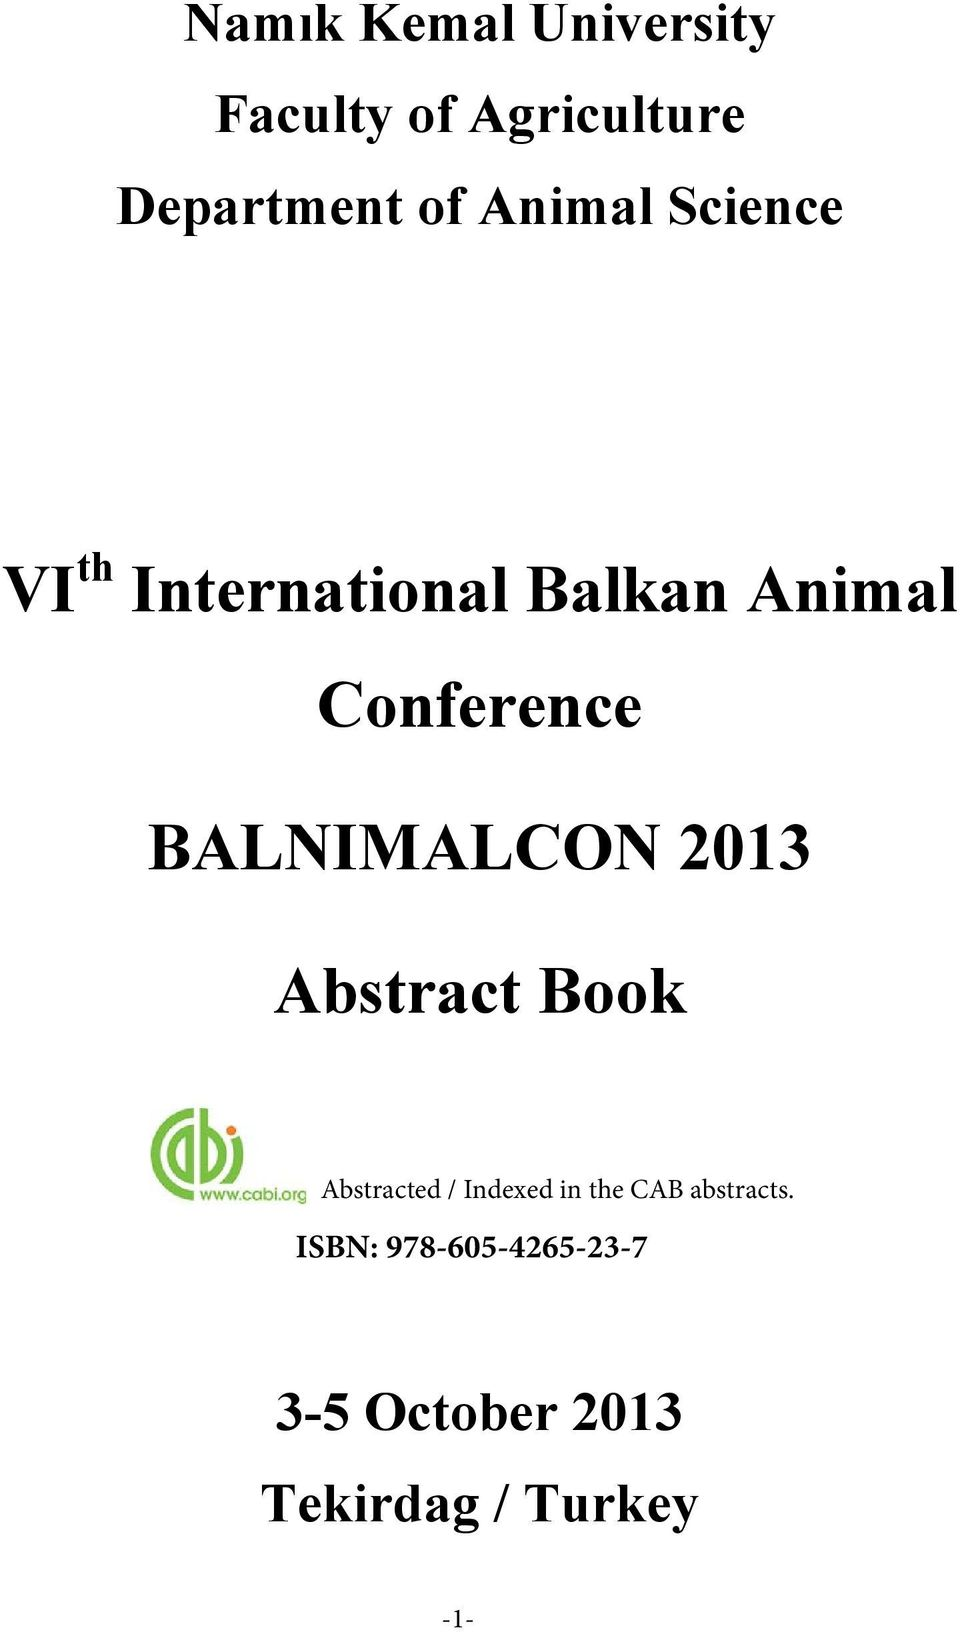 BALNIMALCON 2013 Book ed / Indexed in the CAB abstracts.